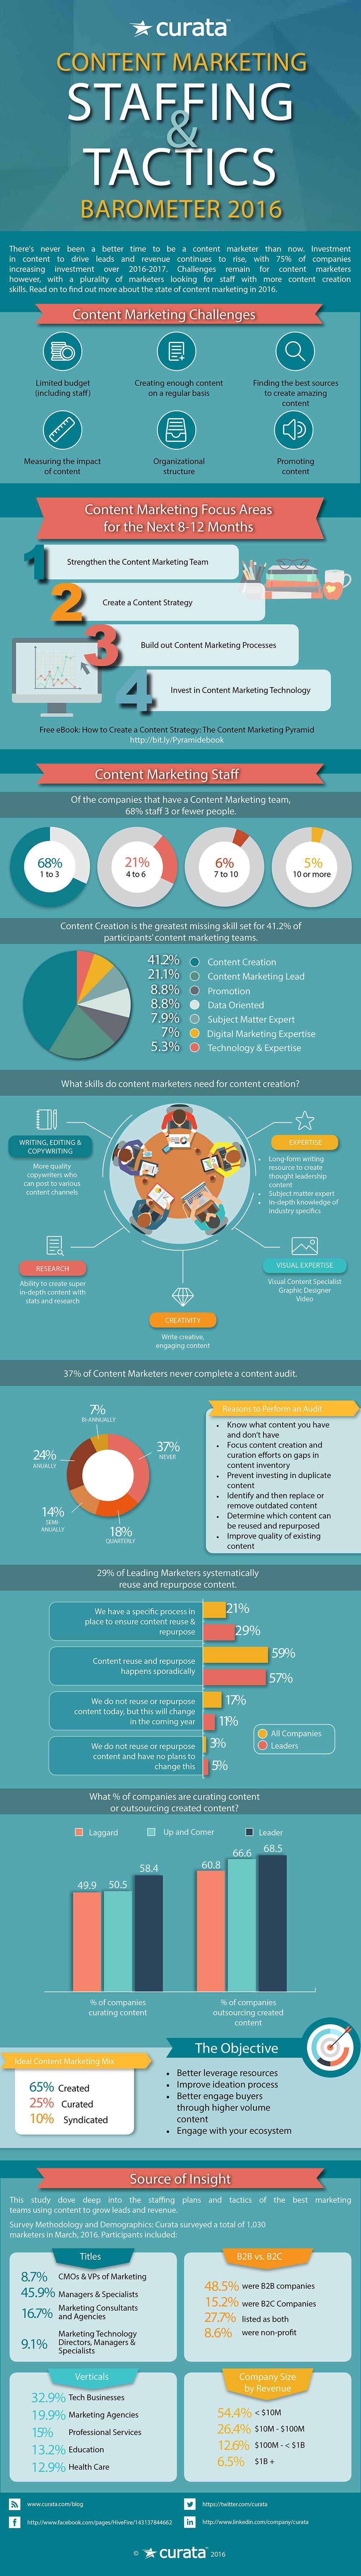 Content marketing infographic 2016